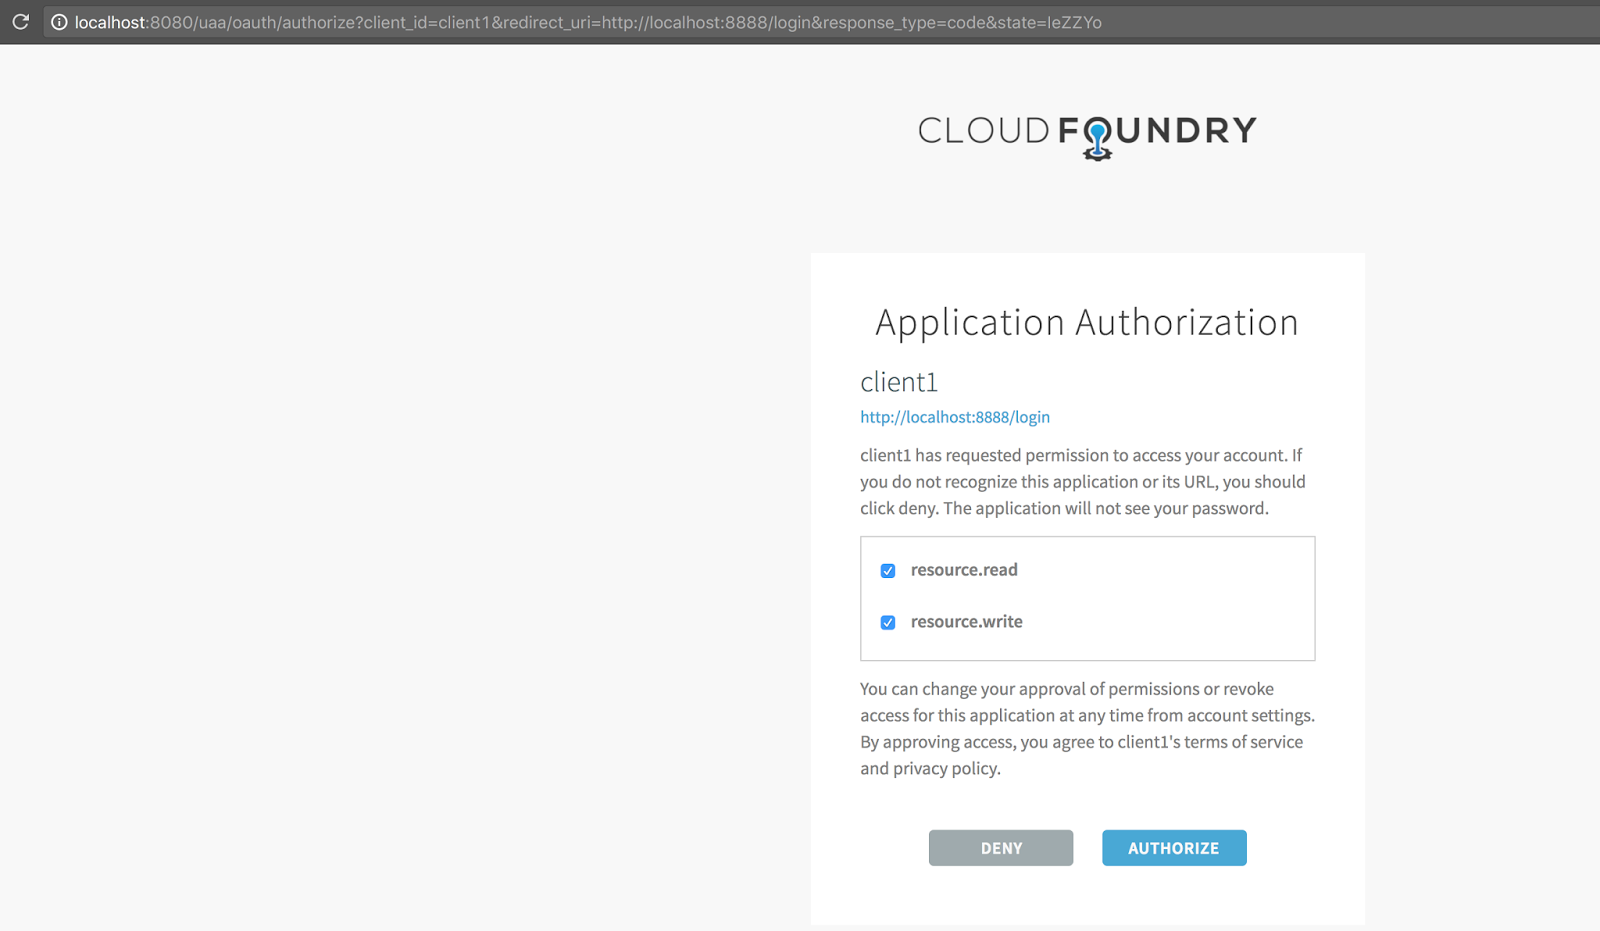 all and sundry: Using UAA OAuth2 authorization server